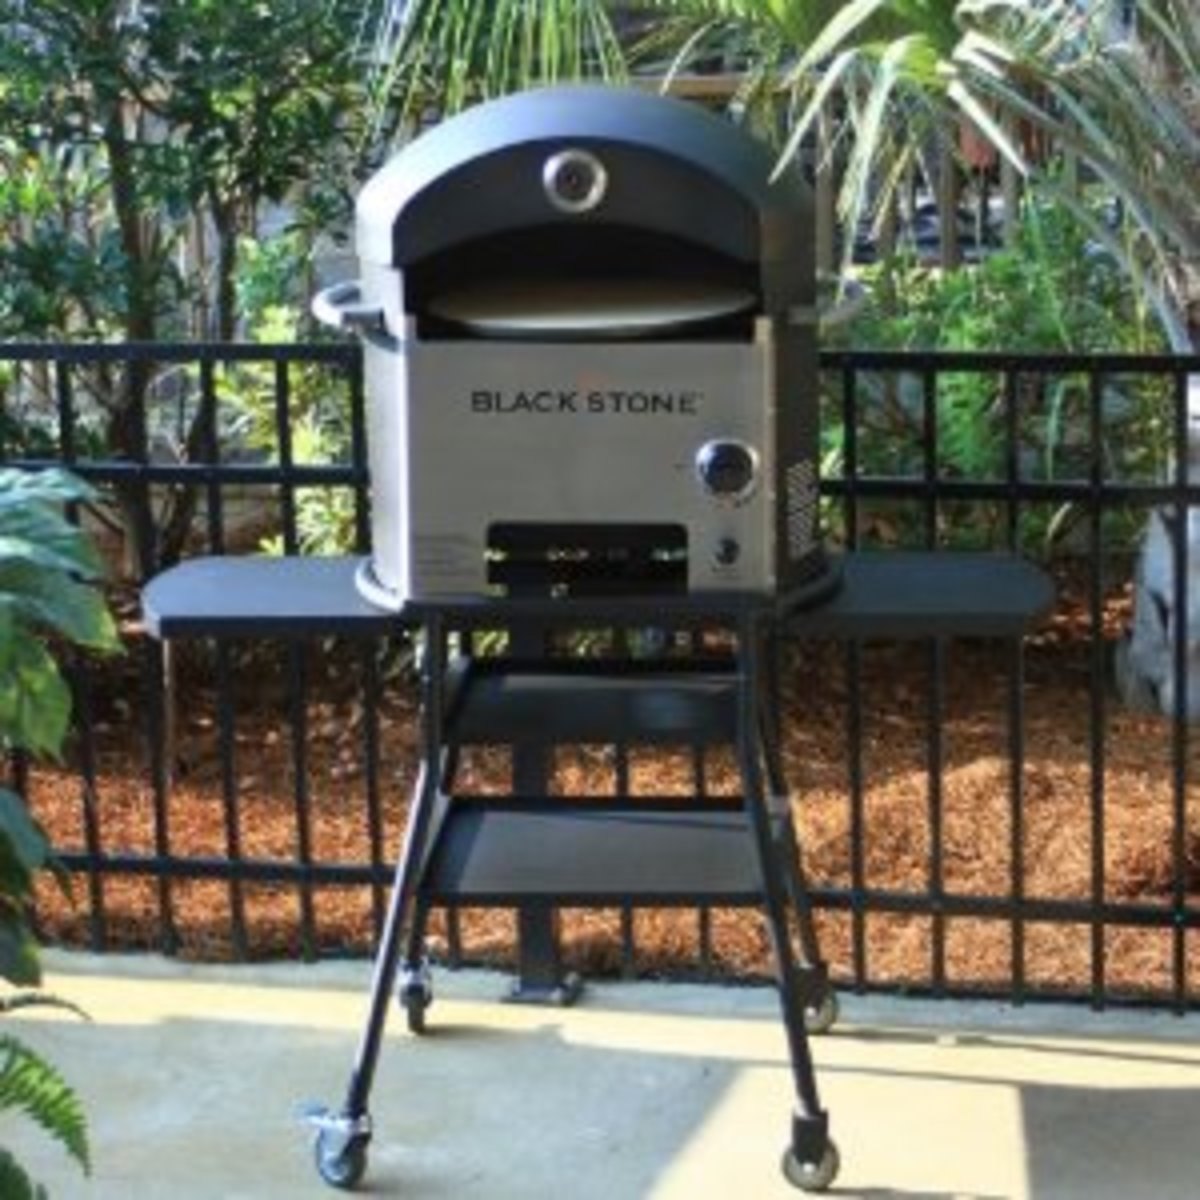 The Blackstone 1575 Outdoor Oven